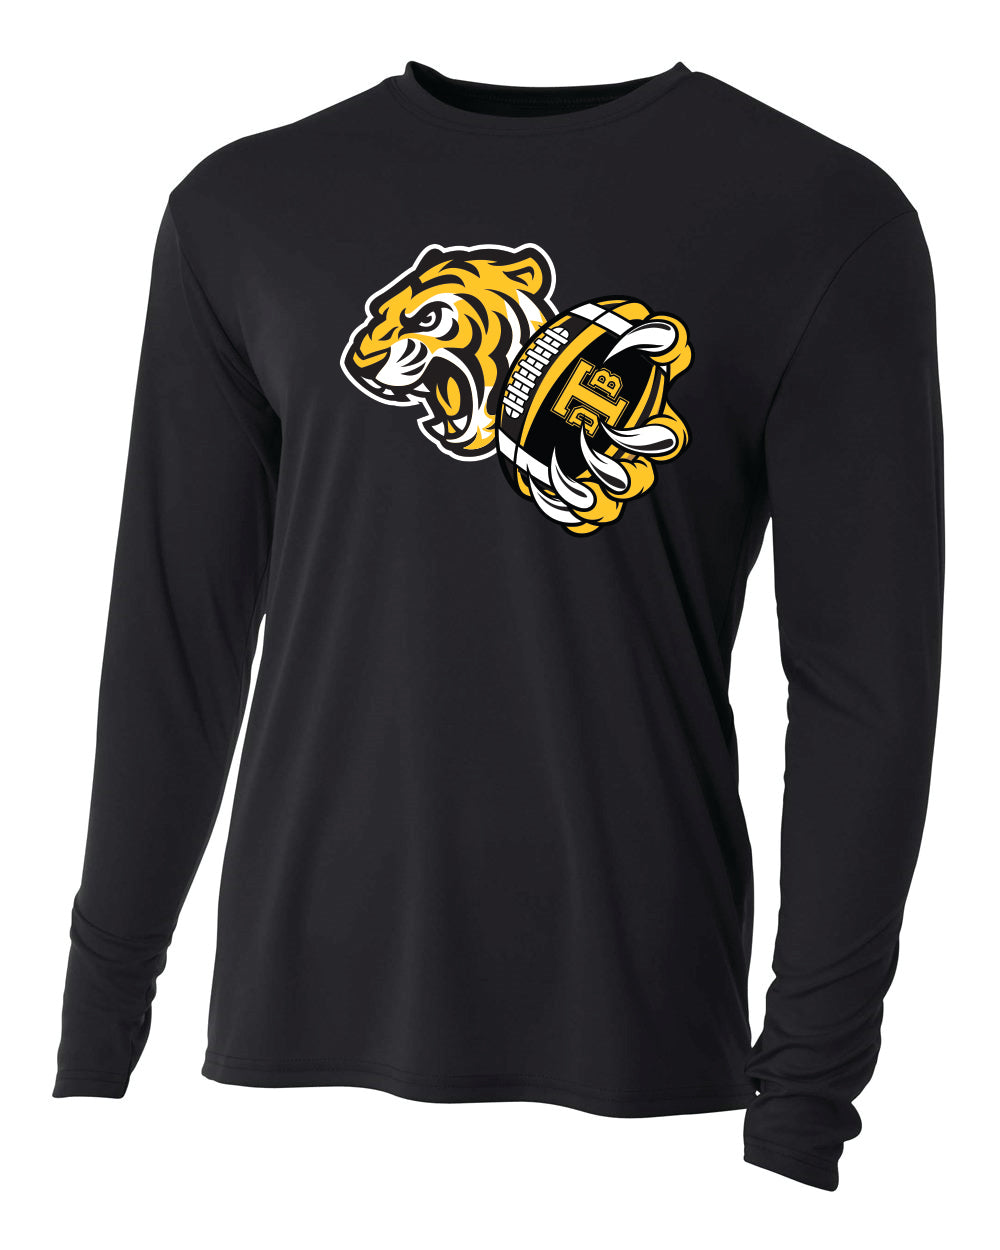 Don Bosco Drifit - Tger - Logo1 - LONG SLEEVE